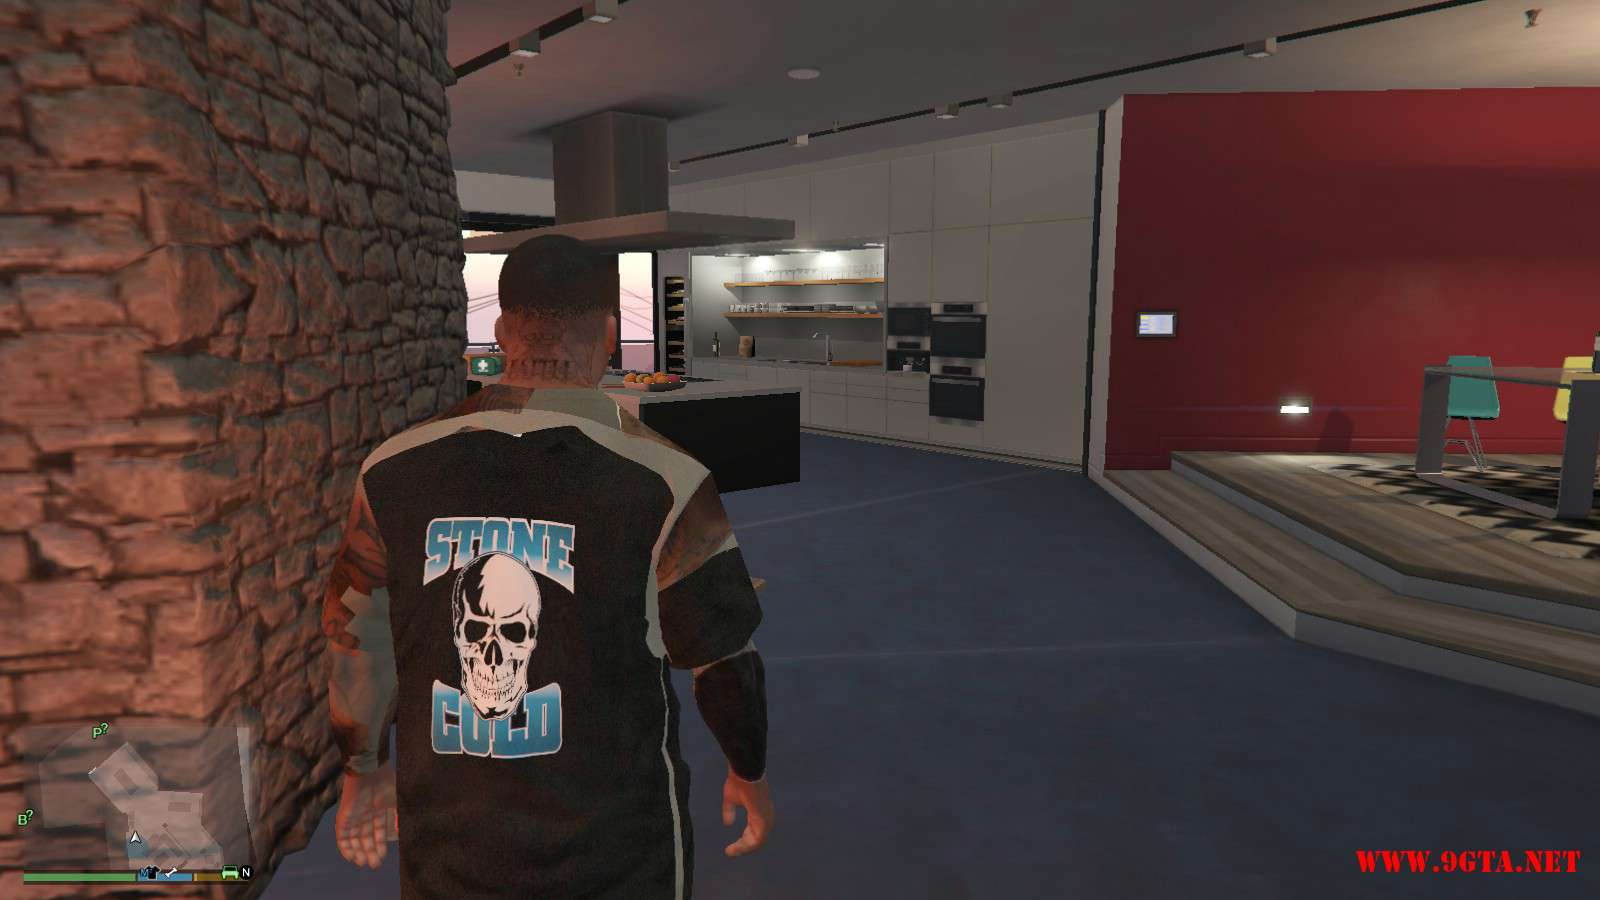 WWE Stone Cold Steve Austin Shirt GTA5 Mods (4)